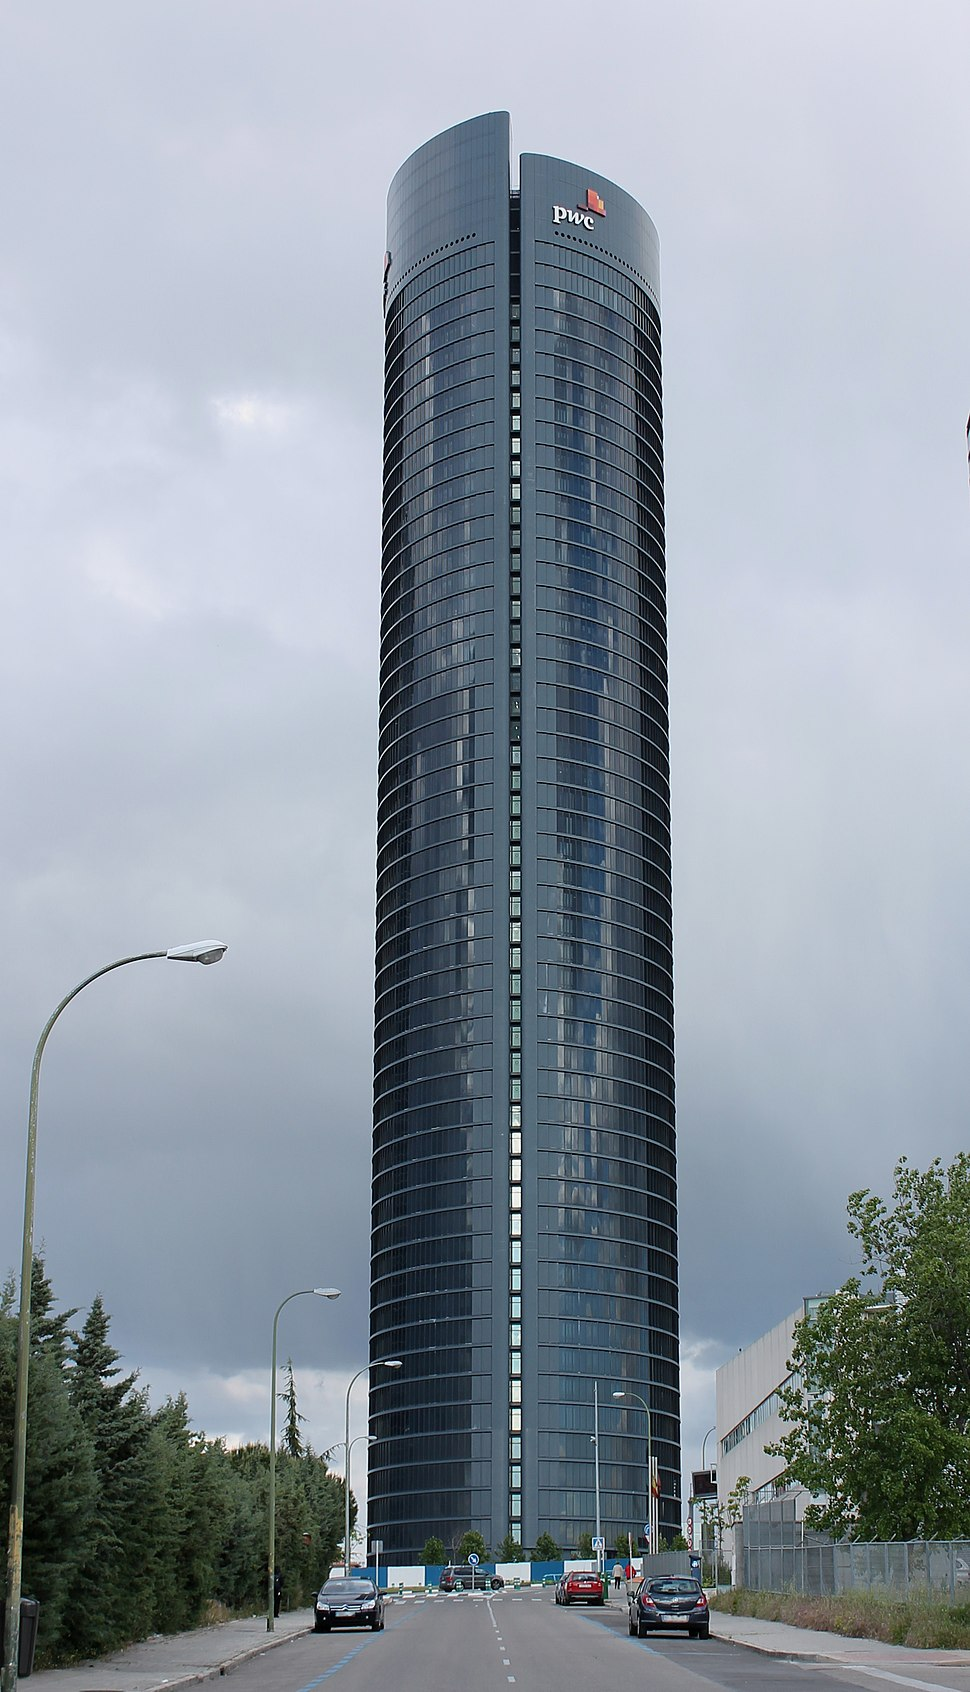 Torre PwC, Madrid, Spain